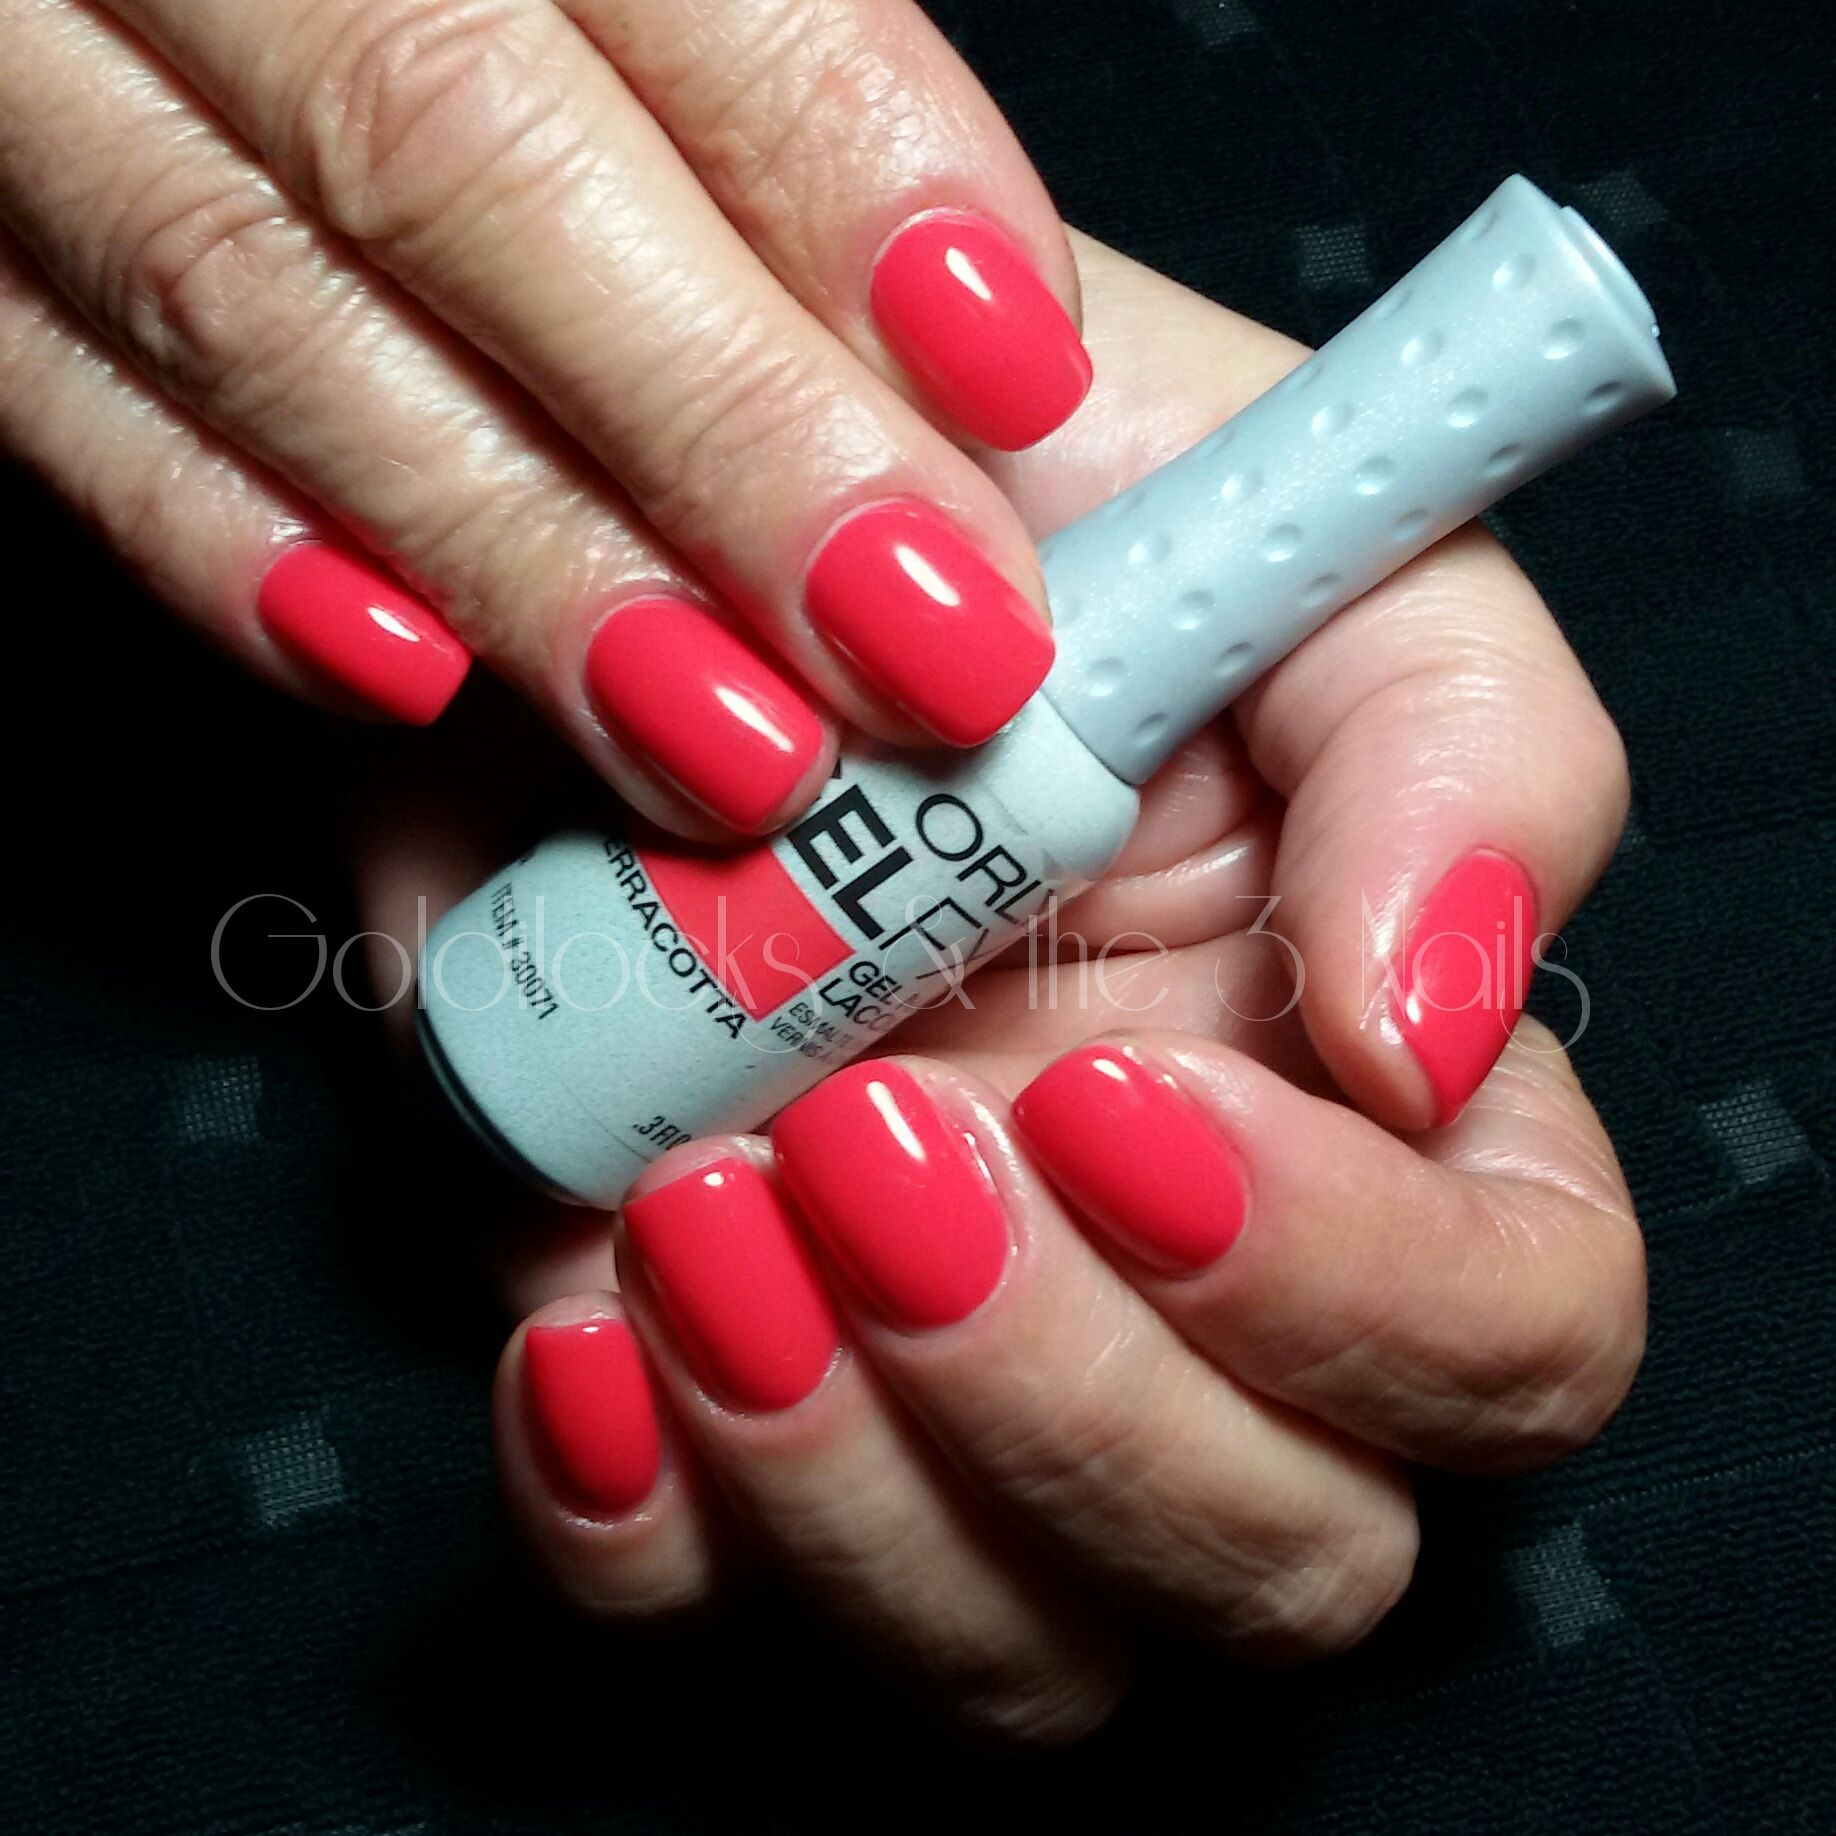 Orly GelFX | Terracotta | Gel Polish | Coral Nails | "|1836|1836|?|en|2|970f085bd481741f0ffe6aa4b2227916|False|UNLIKELY|0.31762367486953735